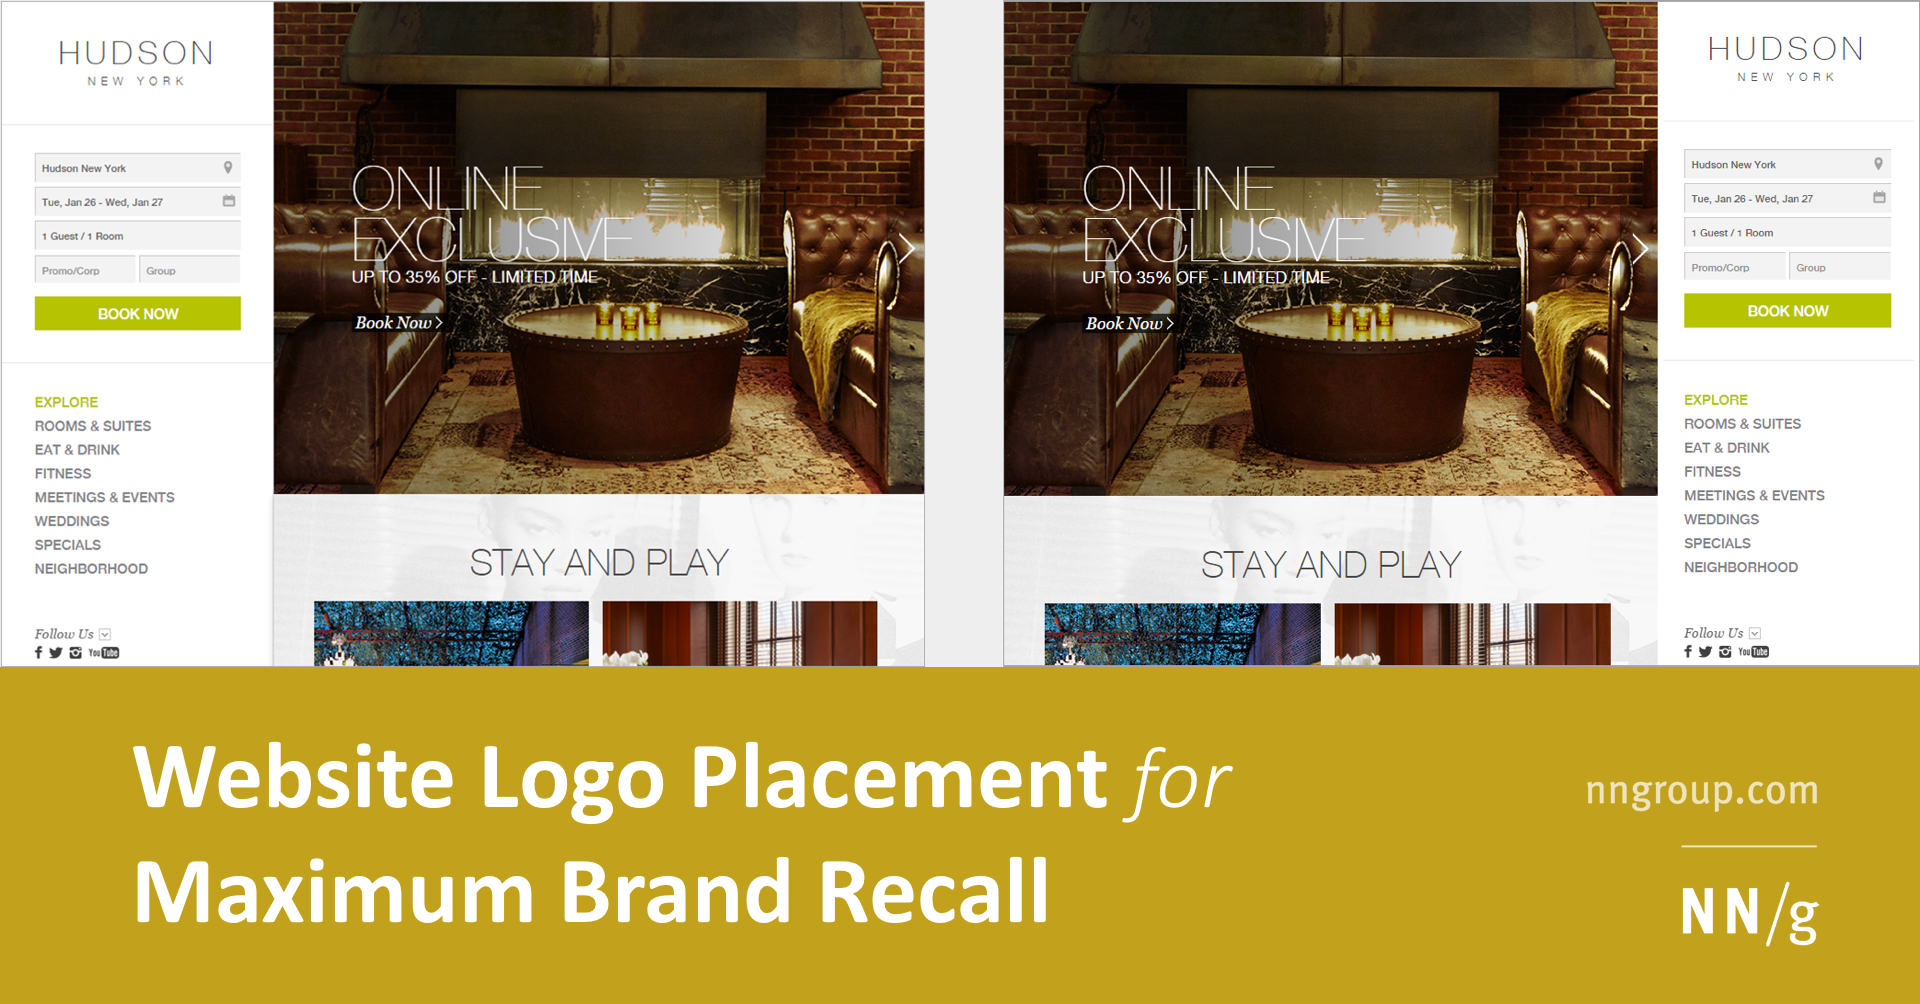 Website Logo Placement for Maximum Brand Recall